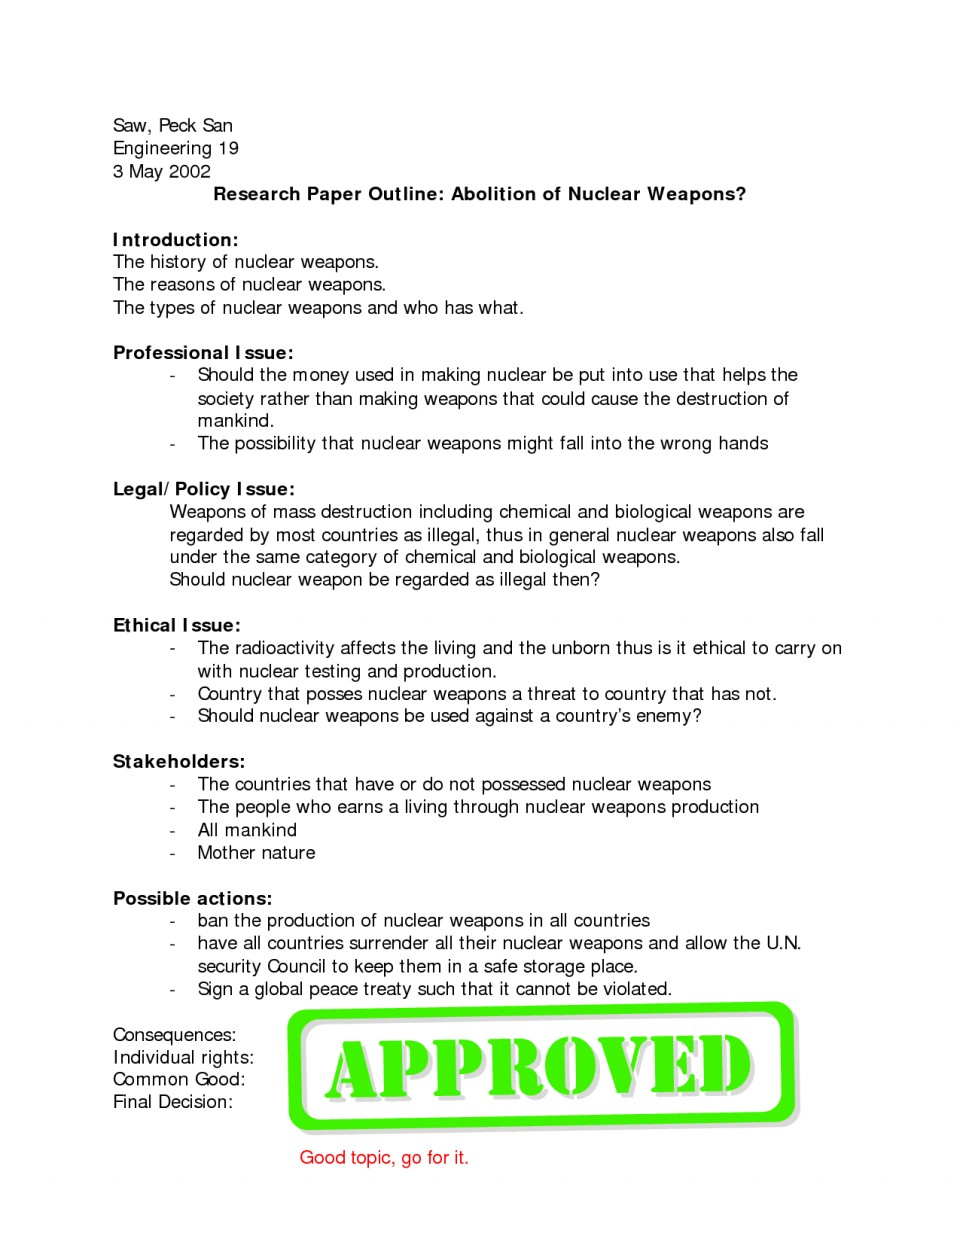 009 How Write Research Paper Outline Online Writing Lab History Term Art Essay Example L Outstanding To An For A Mla Ppt College 960